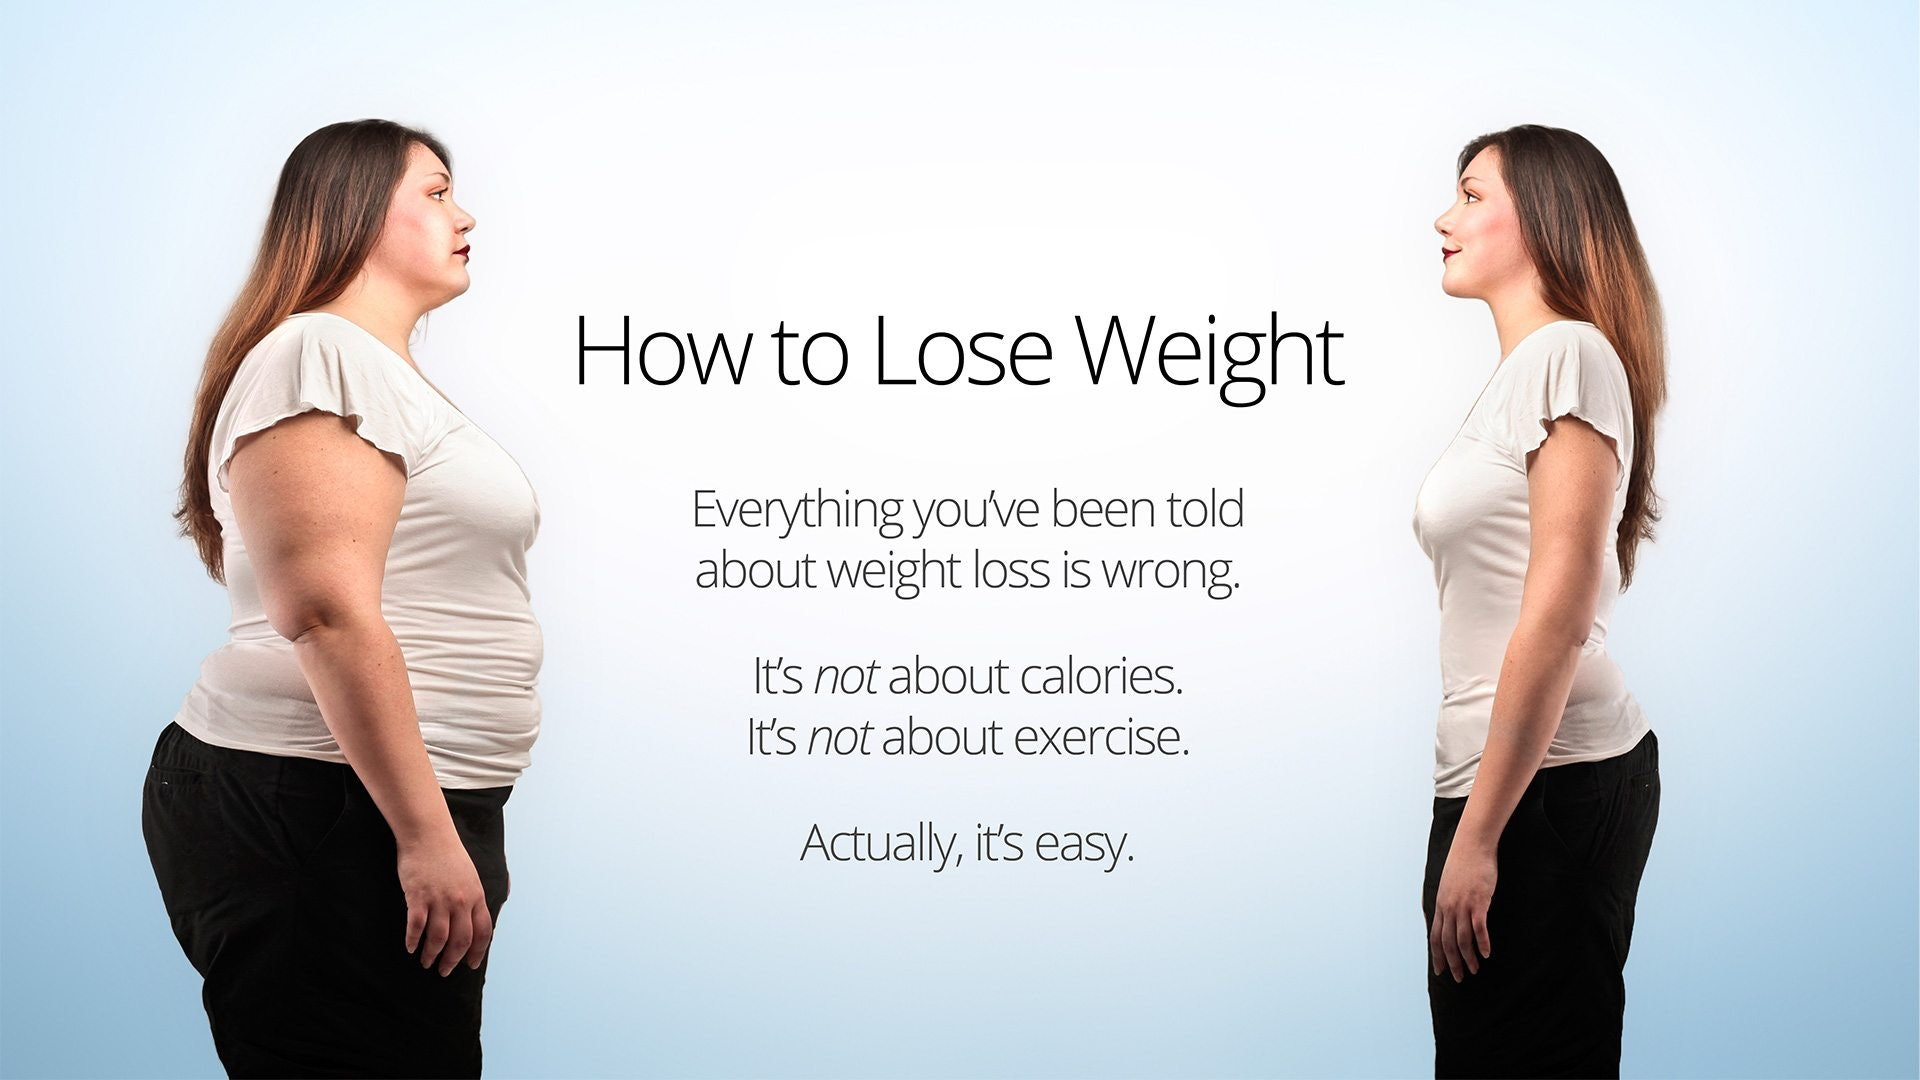 Useful products for weight loss - reduce weight correctly